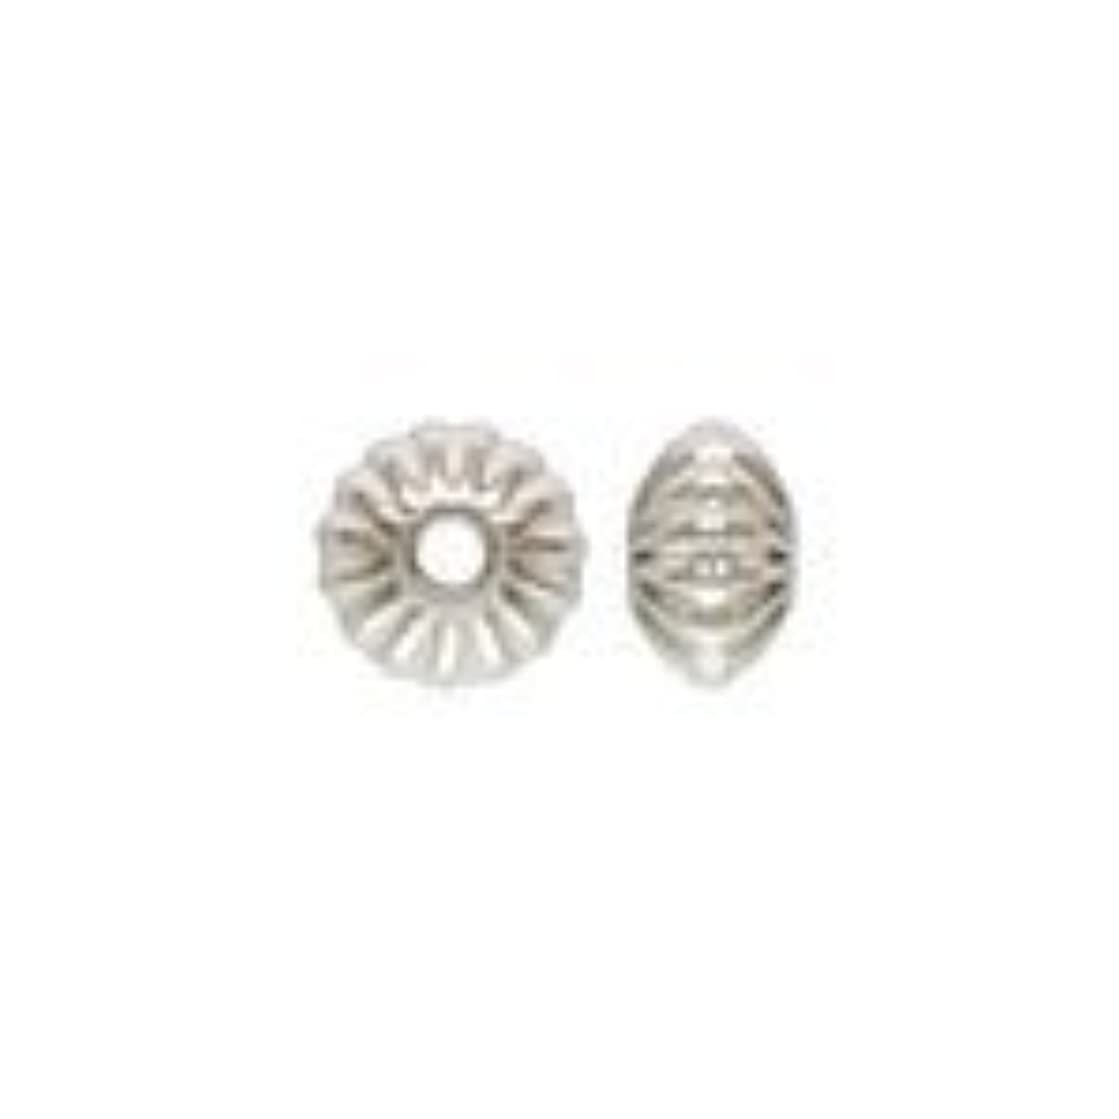 (25) 3.3 x 2mm Sterling Silver CORRUGATED SAUCER Beads 31030